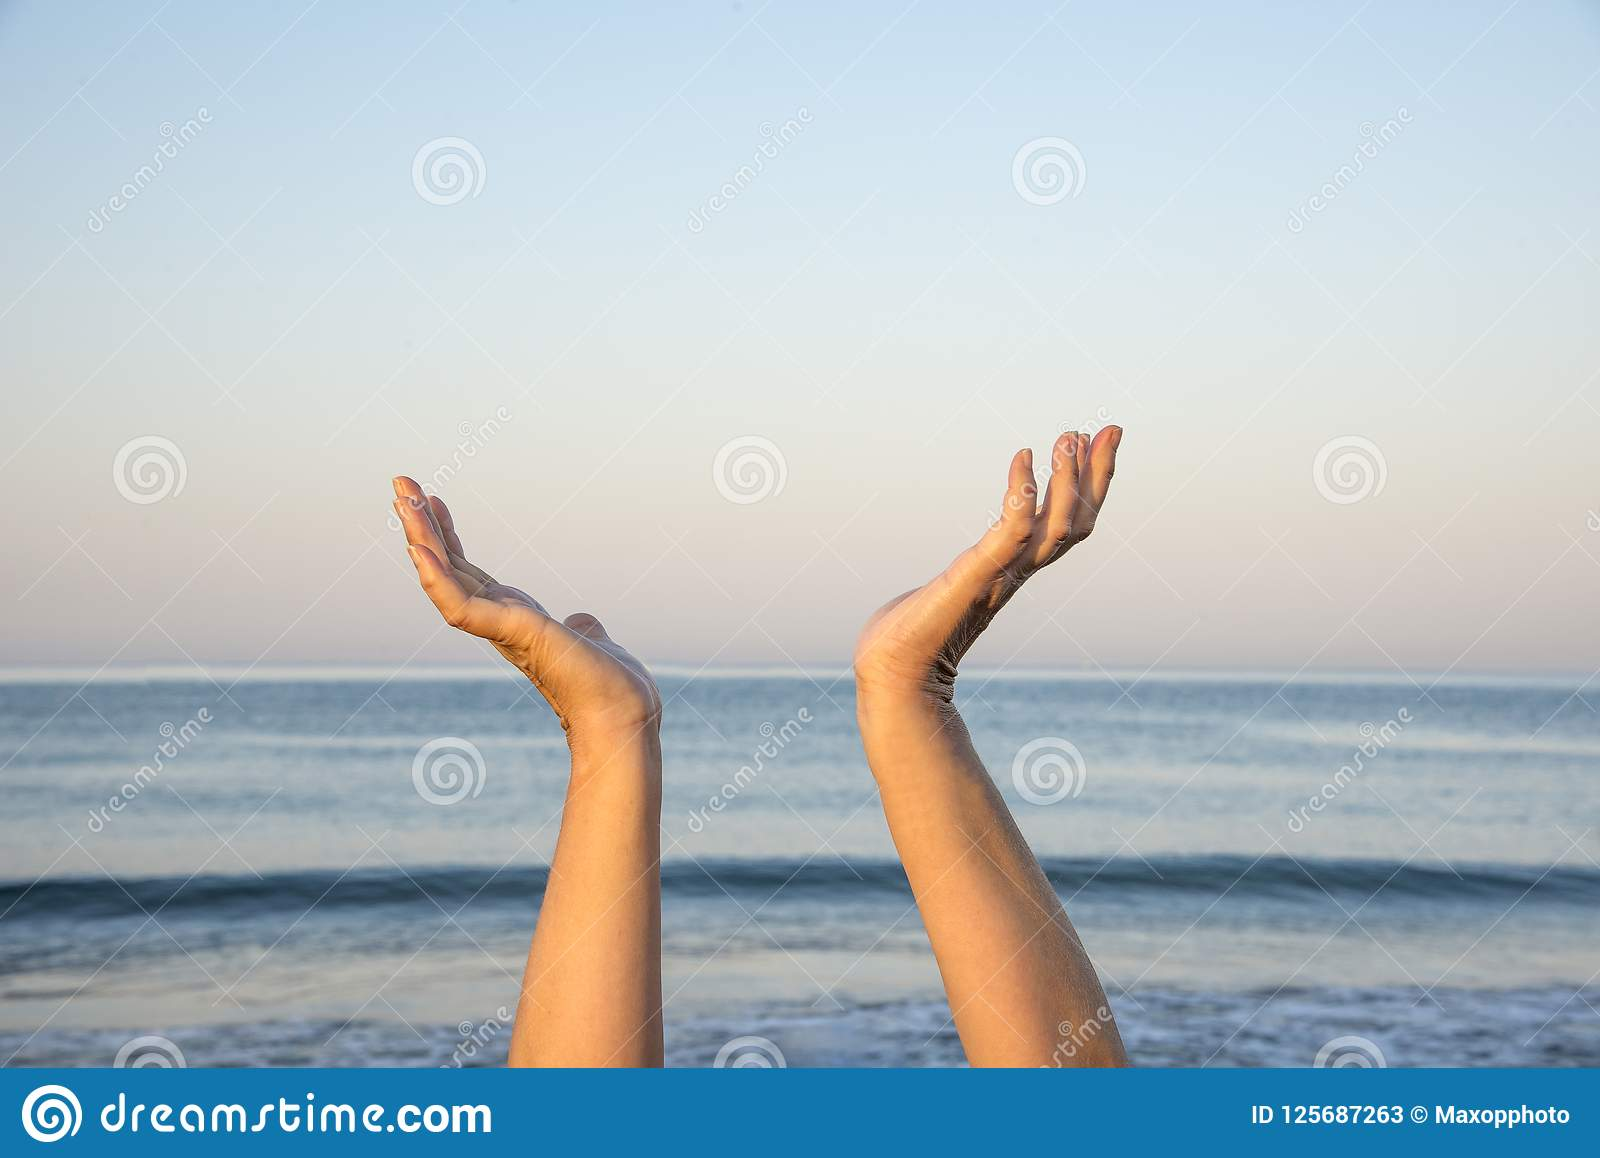 Hands up in the air by the sea. The hope and spiritual concept.